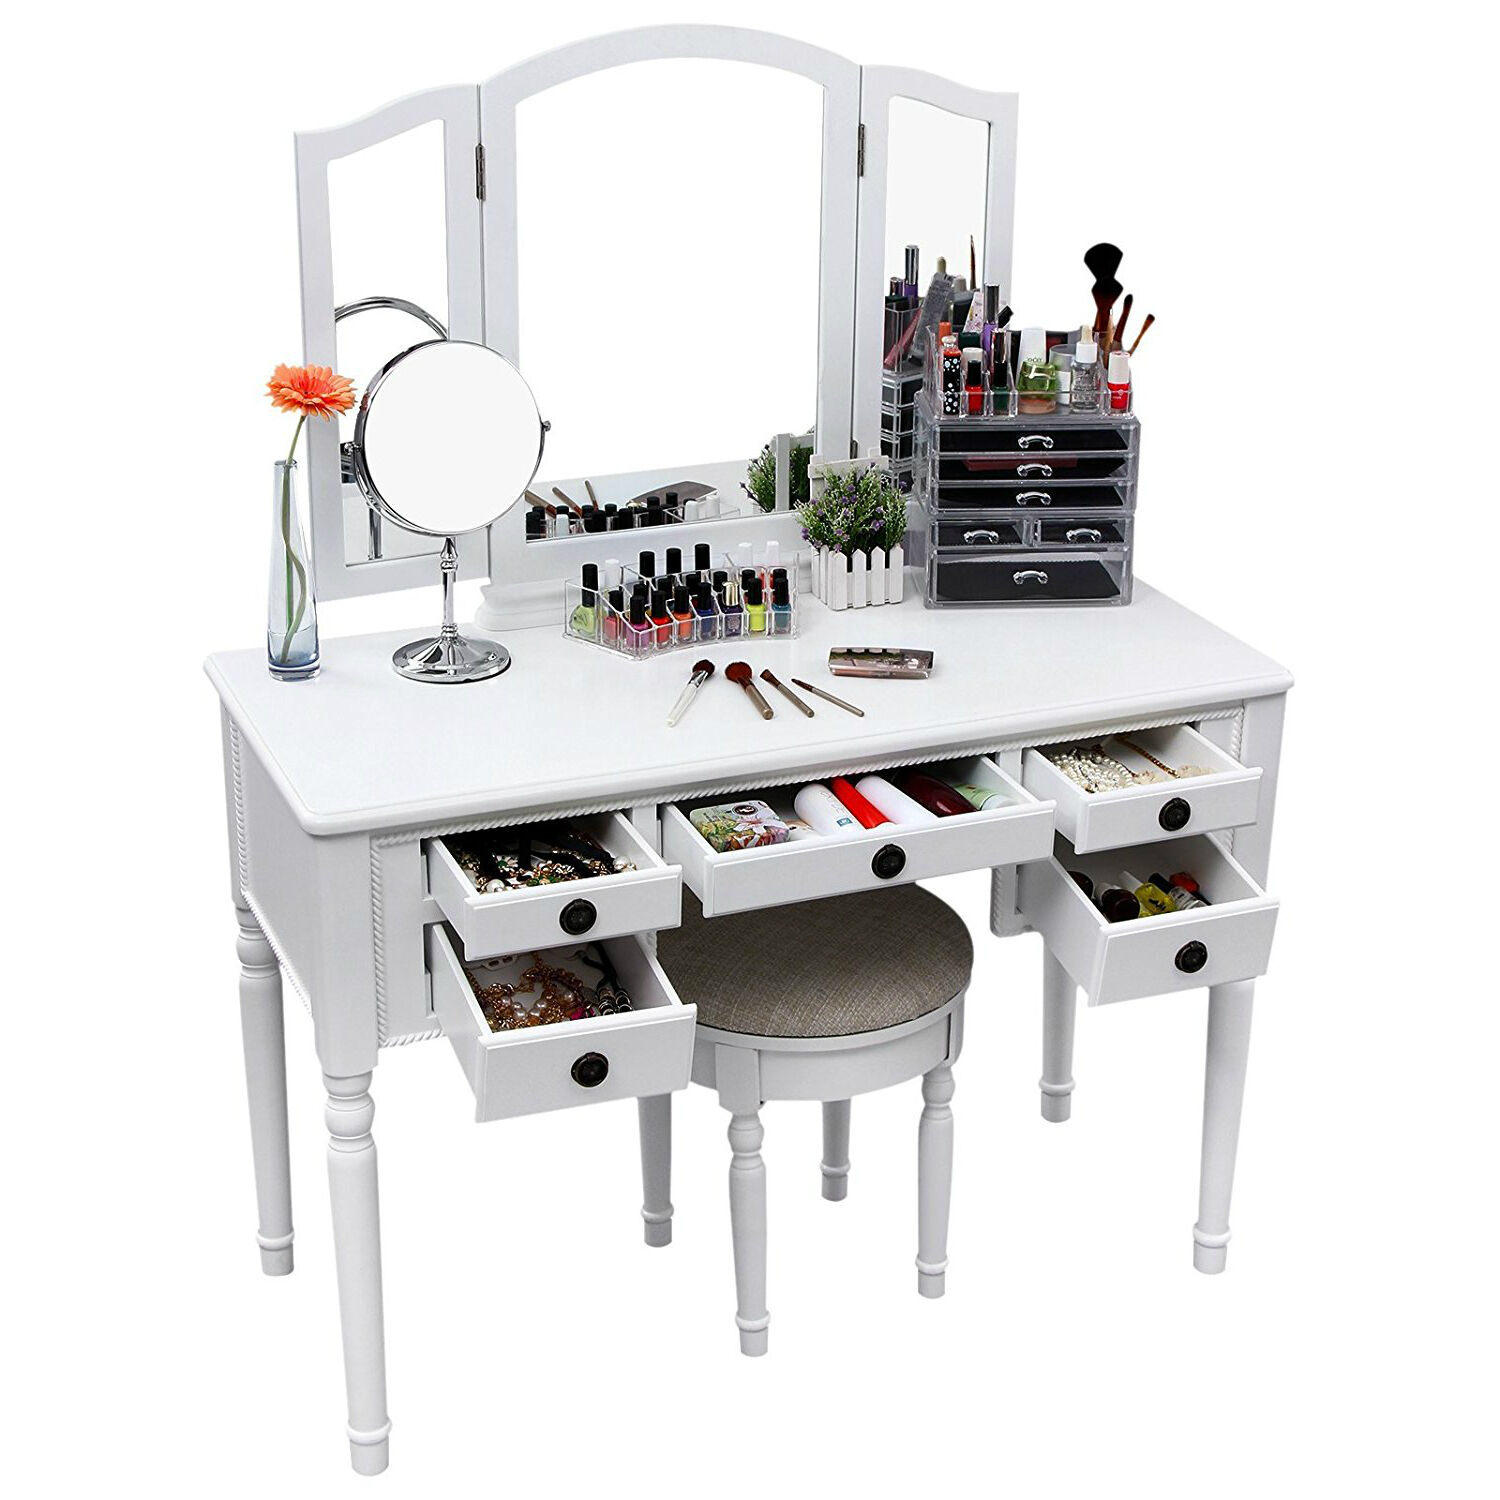 Mirrored Vanity Desk Makeup Set Dressing Table Top Stool Bedroom Furniture White For Sale Online